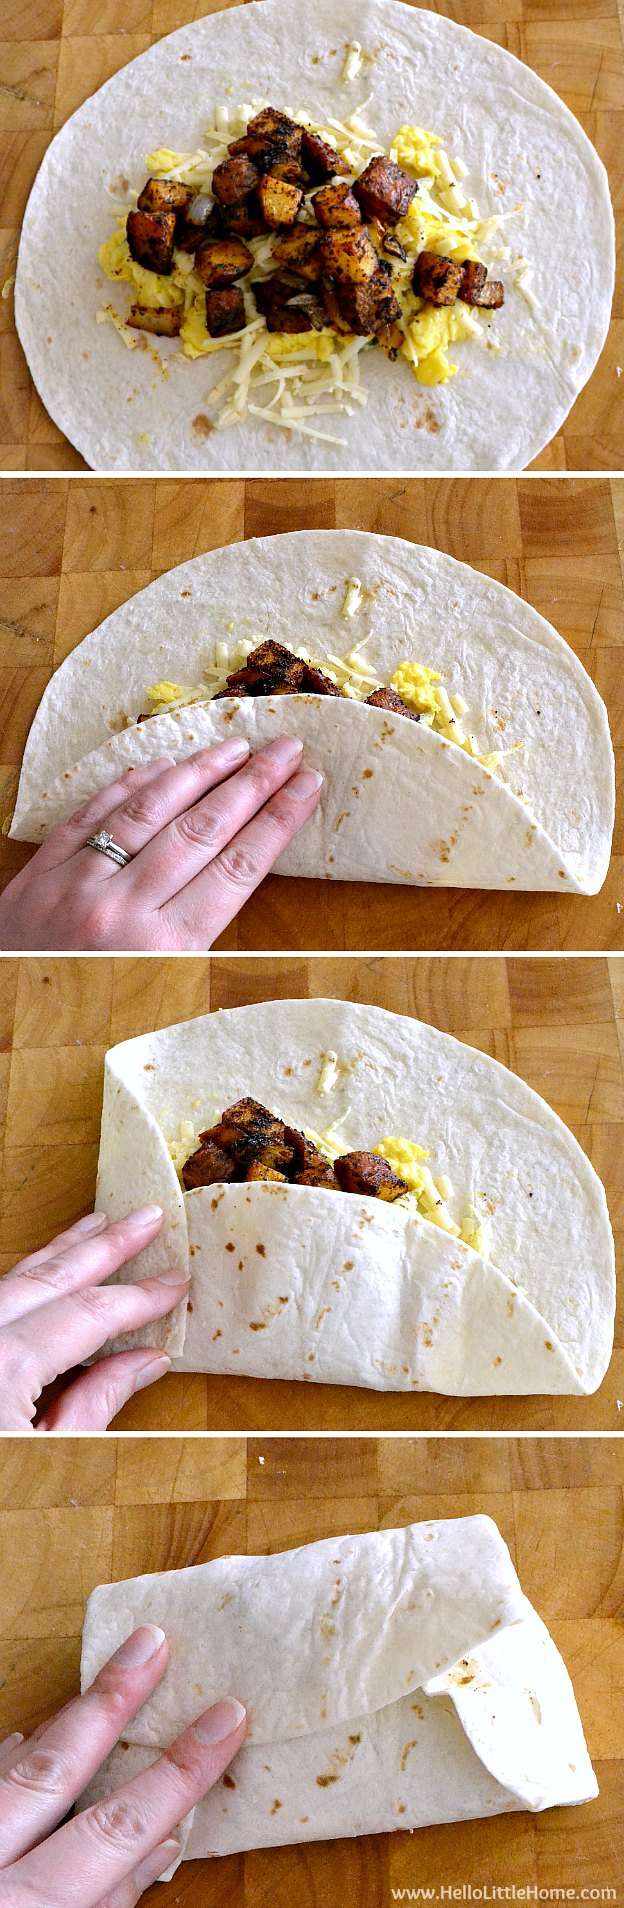 Folding up the Egg and Potato Breakfast Burritos.